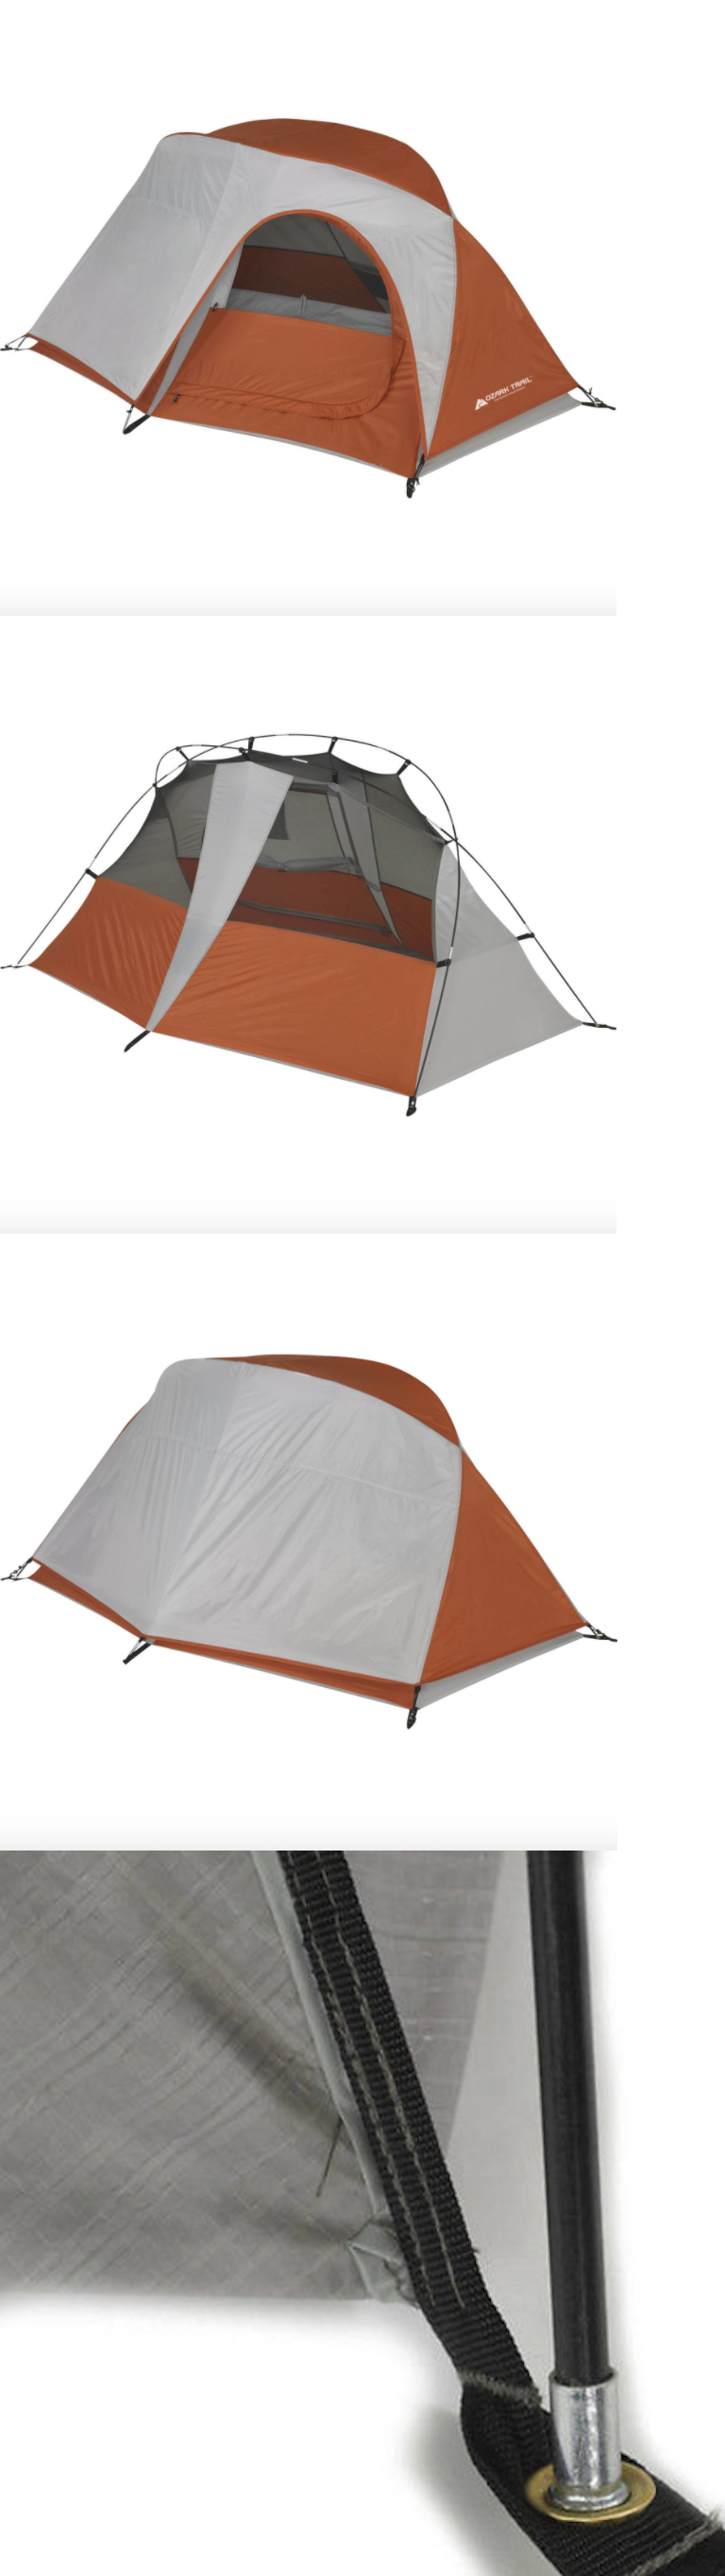 Best 4 Man Tents For Cing Amazing Outdoor Adventures  sc 1 st  Best Tent 2017 & Mountain Trail Tent - Best Tent 2017